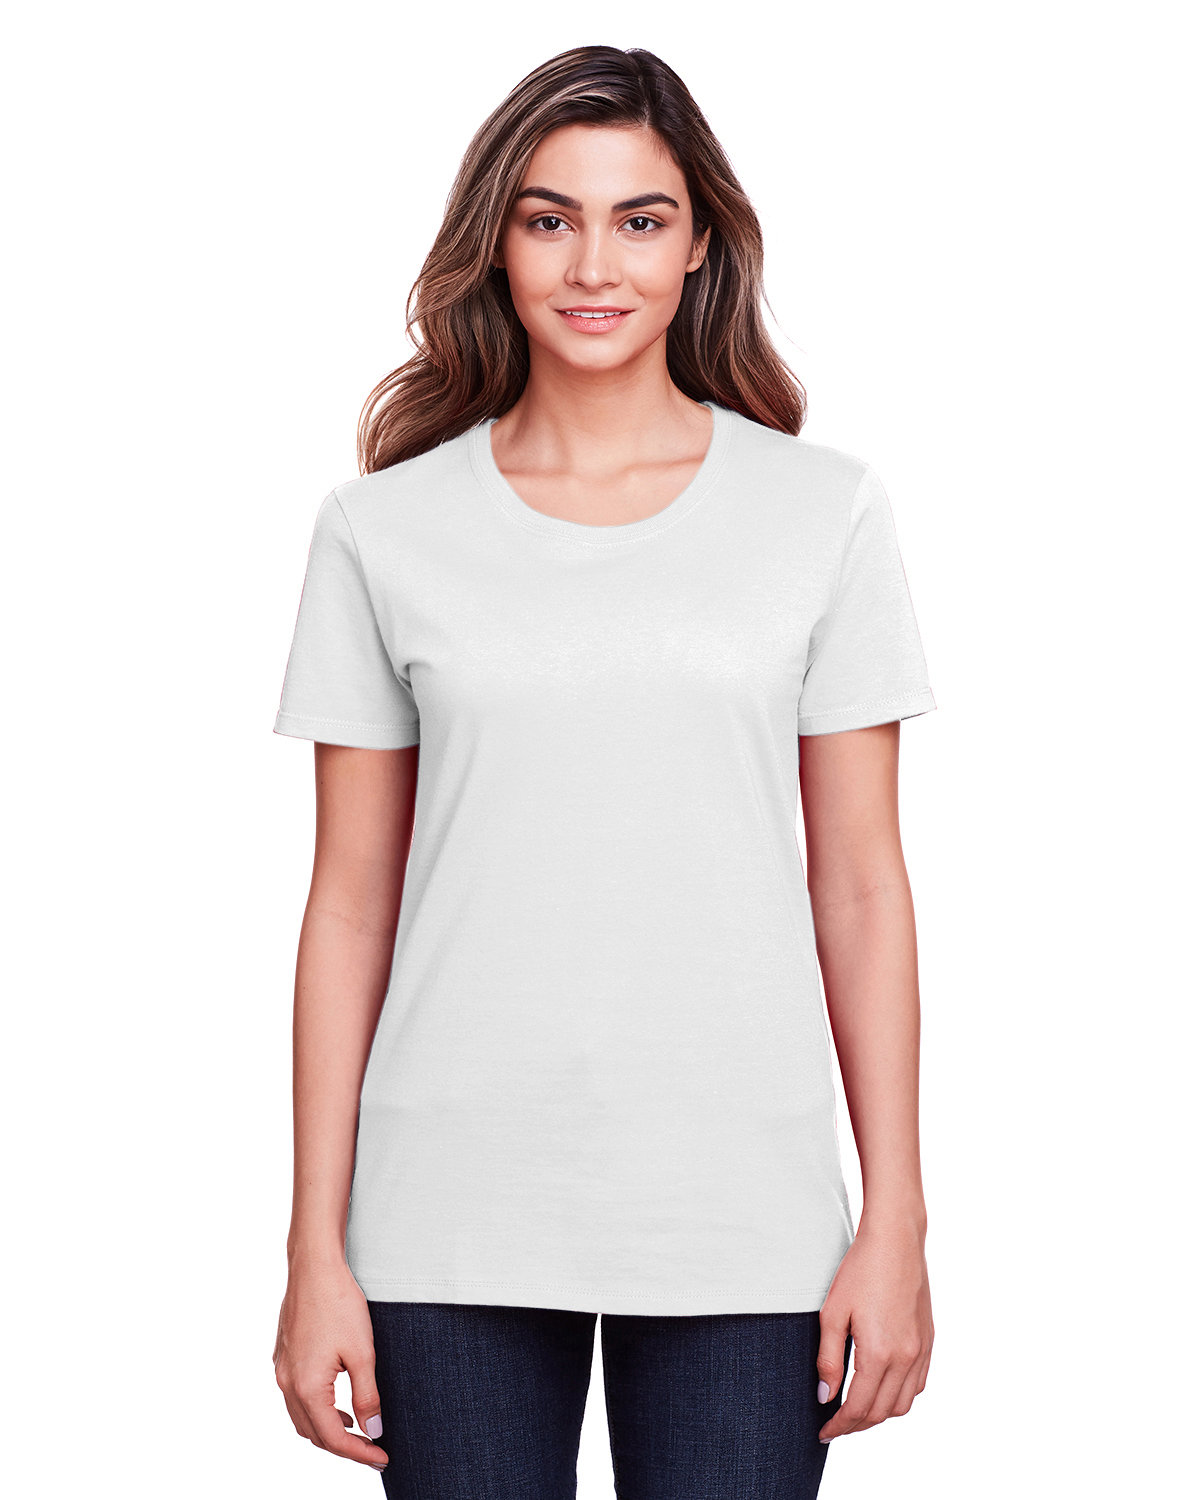 Fruit of the Loom Ladies' ICONIC™ T-Shirt WHITE